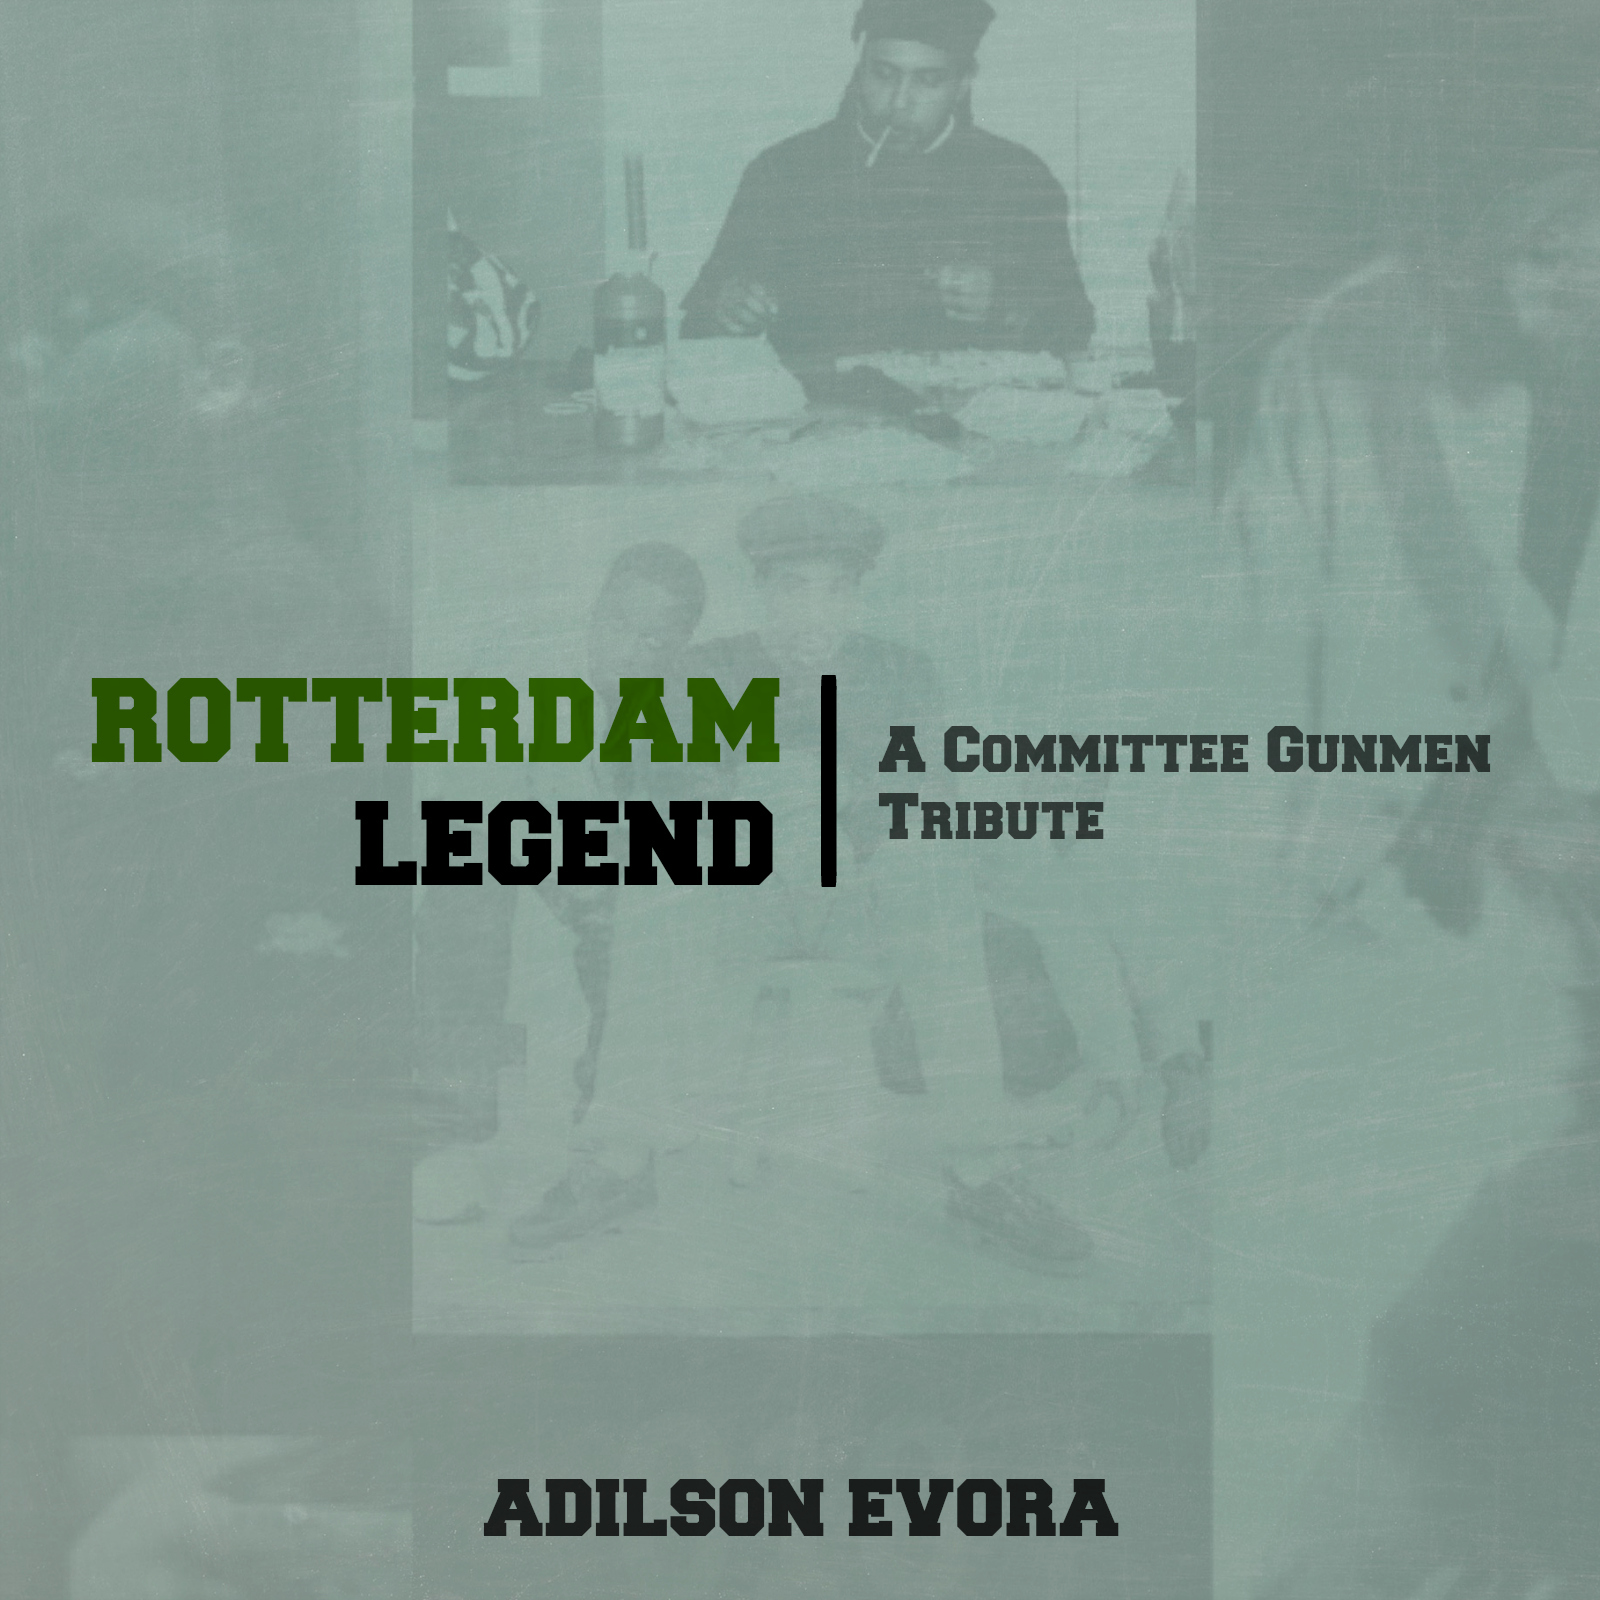 Rotterdam Legend Artwork